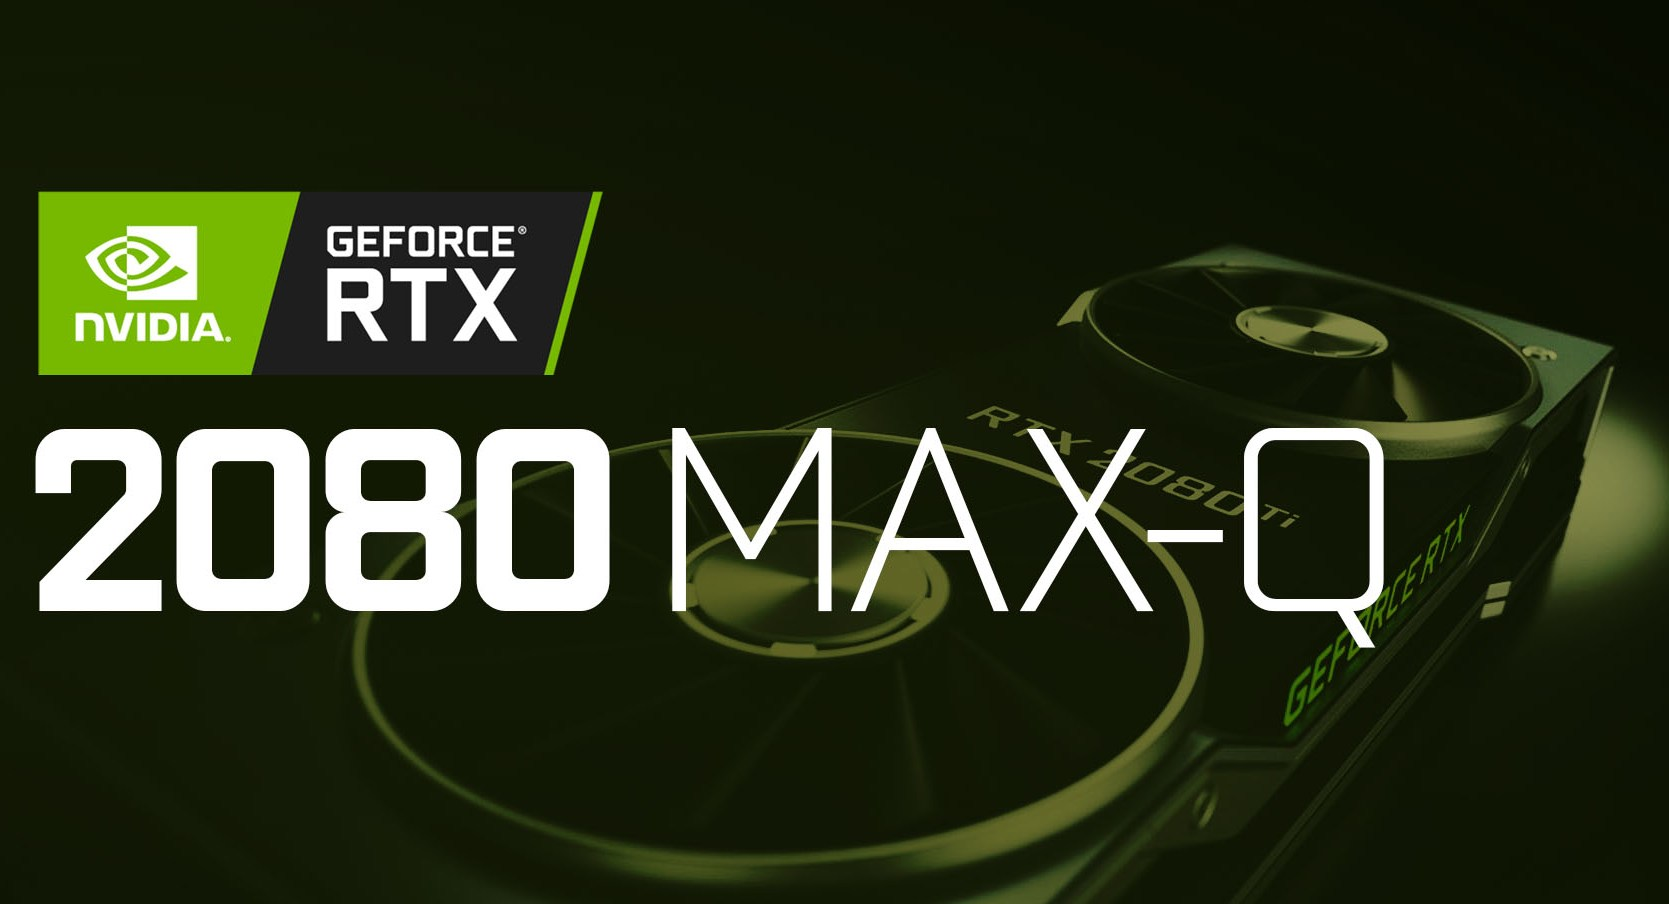 NVIDIA GeForce RTX 2080 Mobility Max Q Feature 1